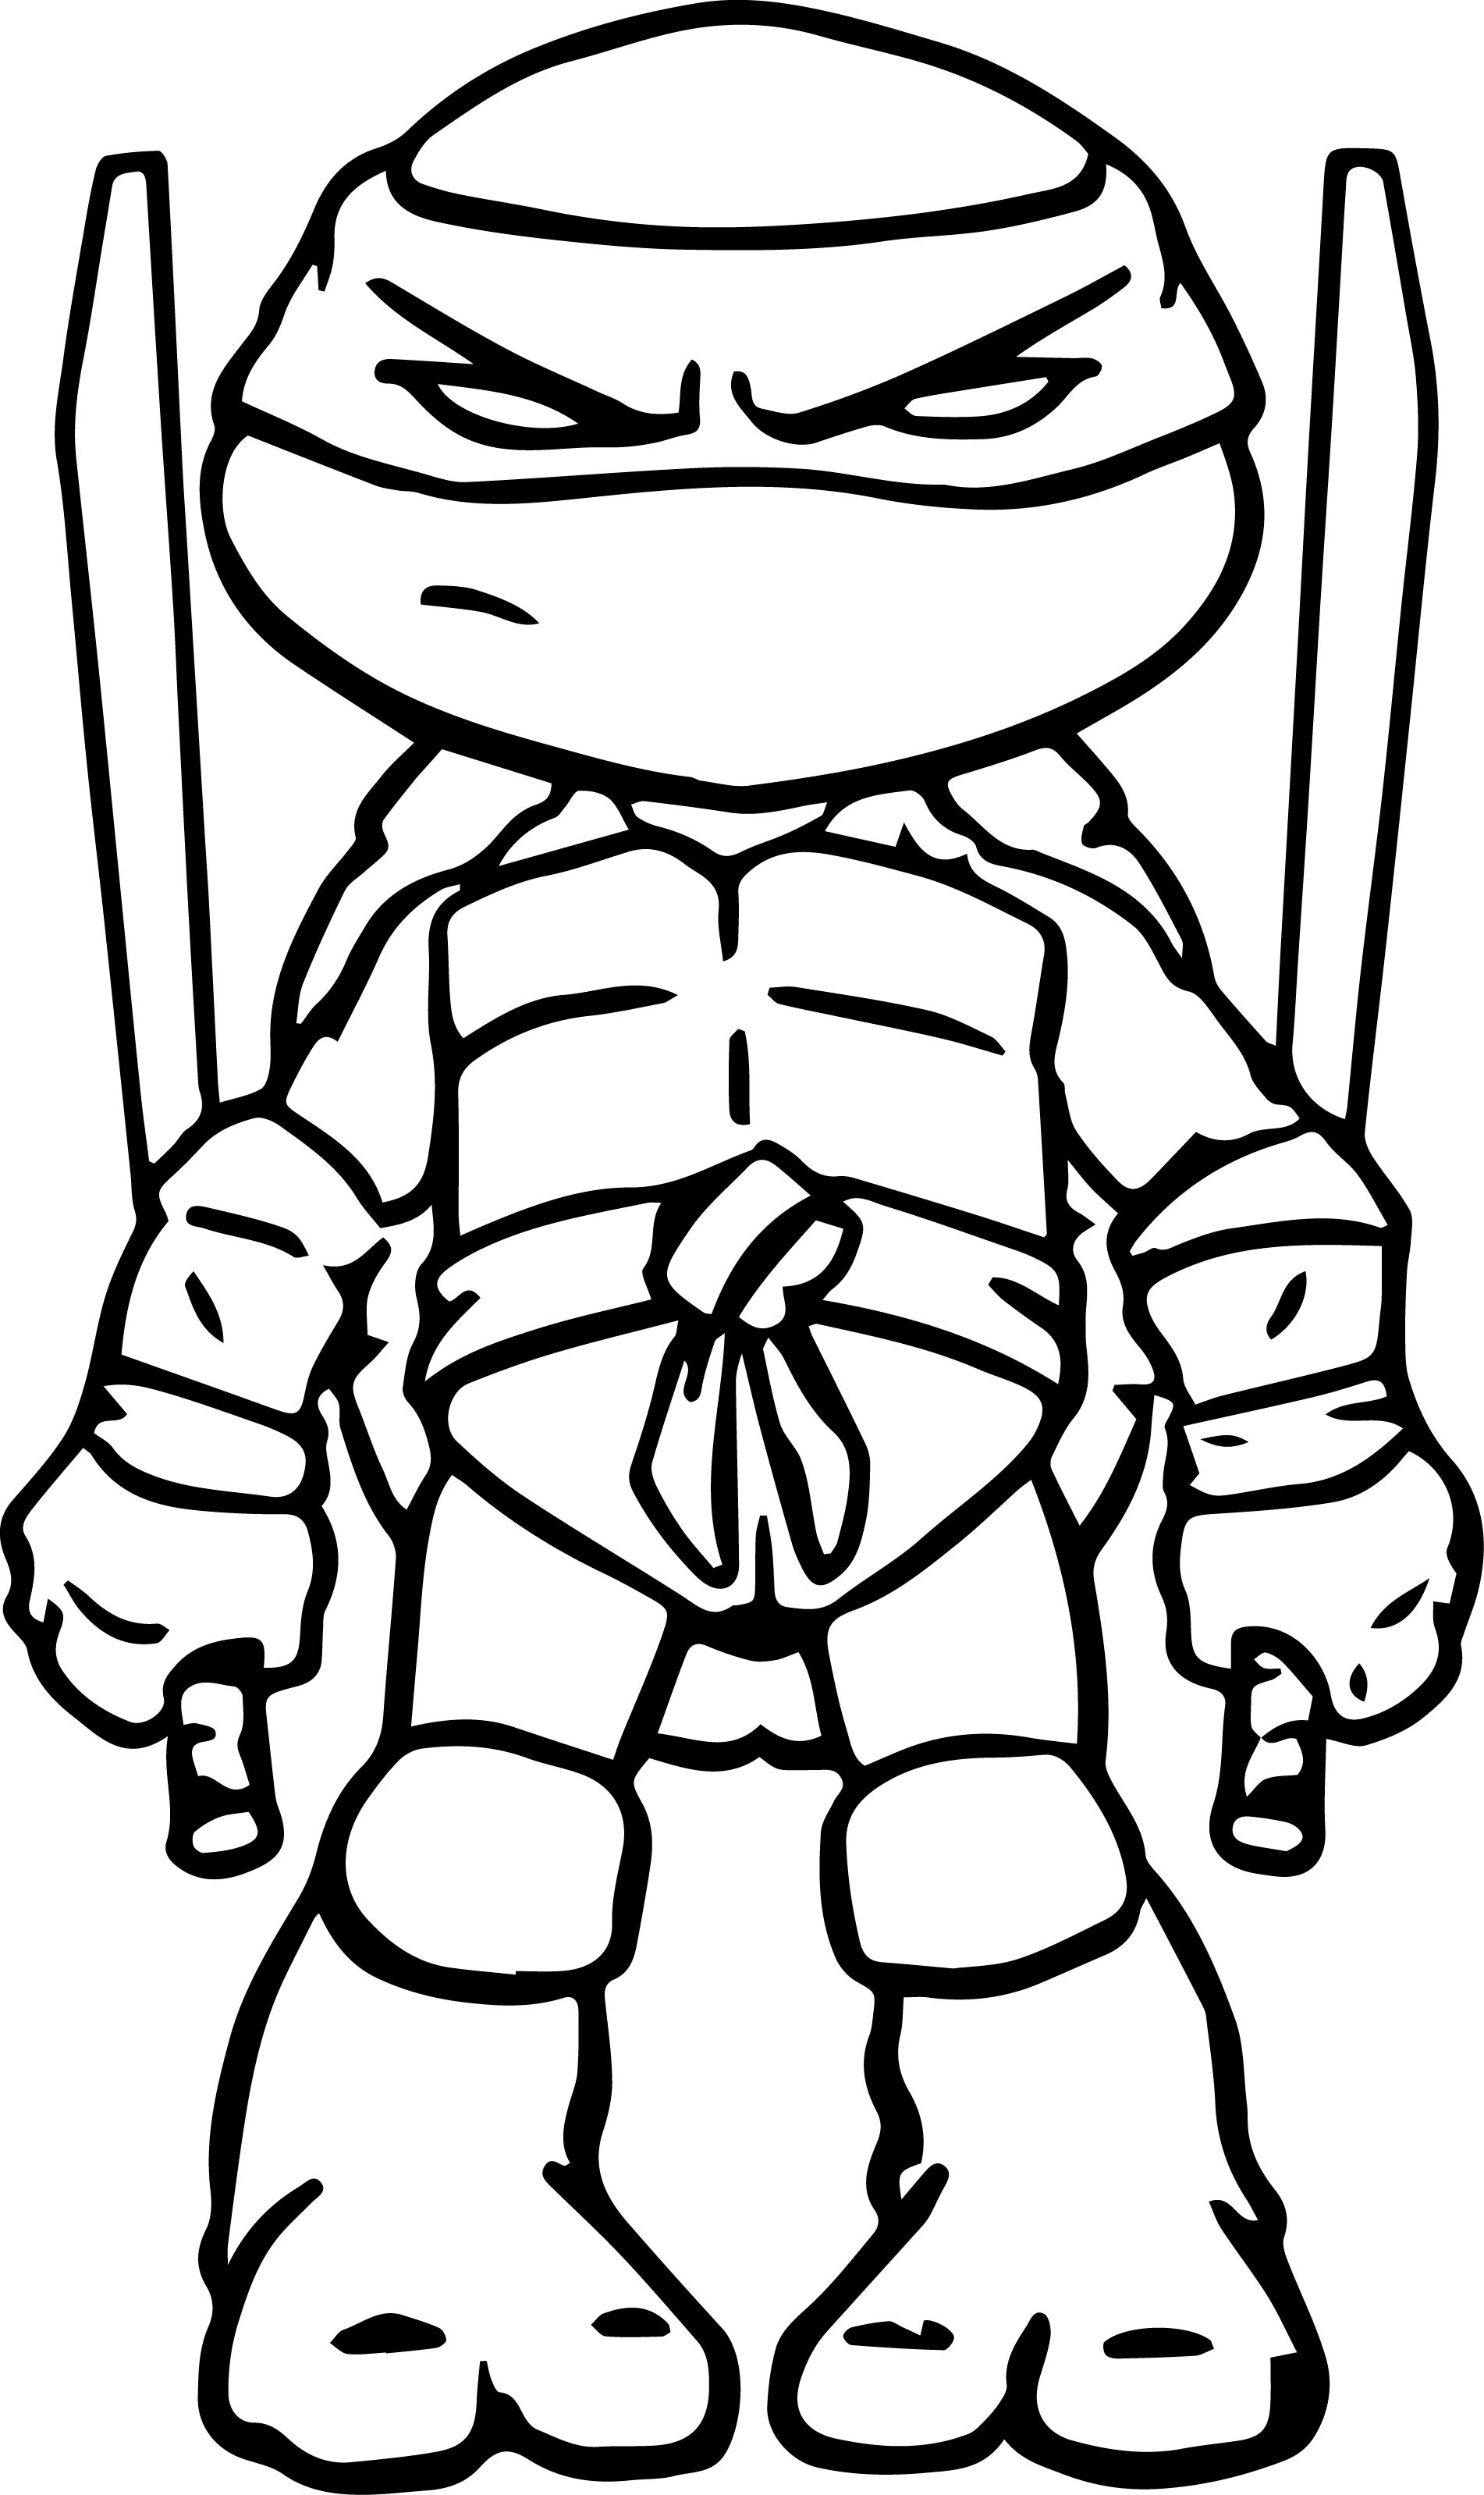 1902x3197 Ninja Turtles Art Coloring Page Ninja Turtles Art, Ninja Turtles